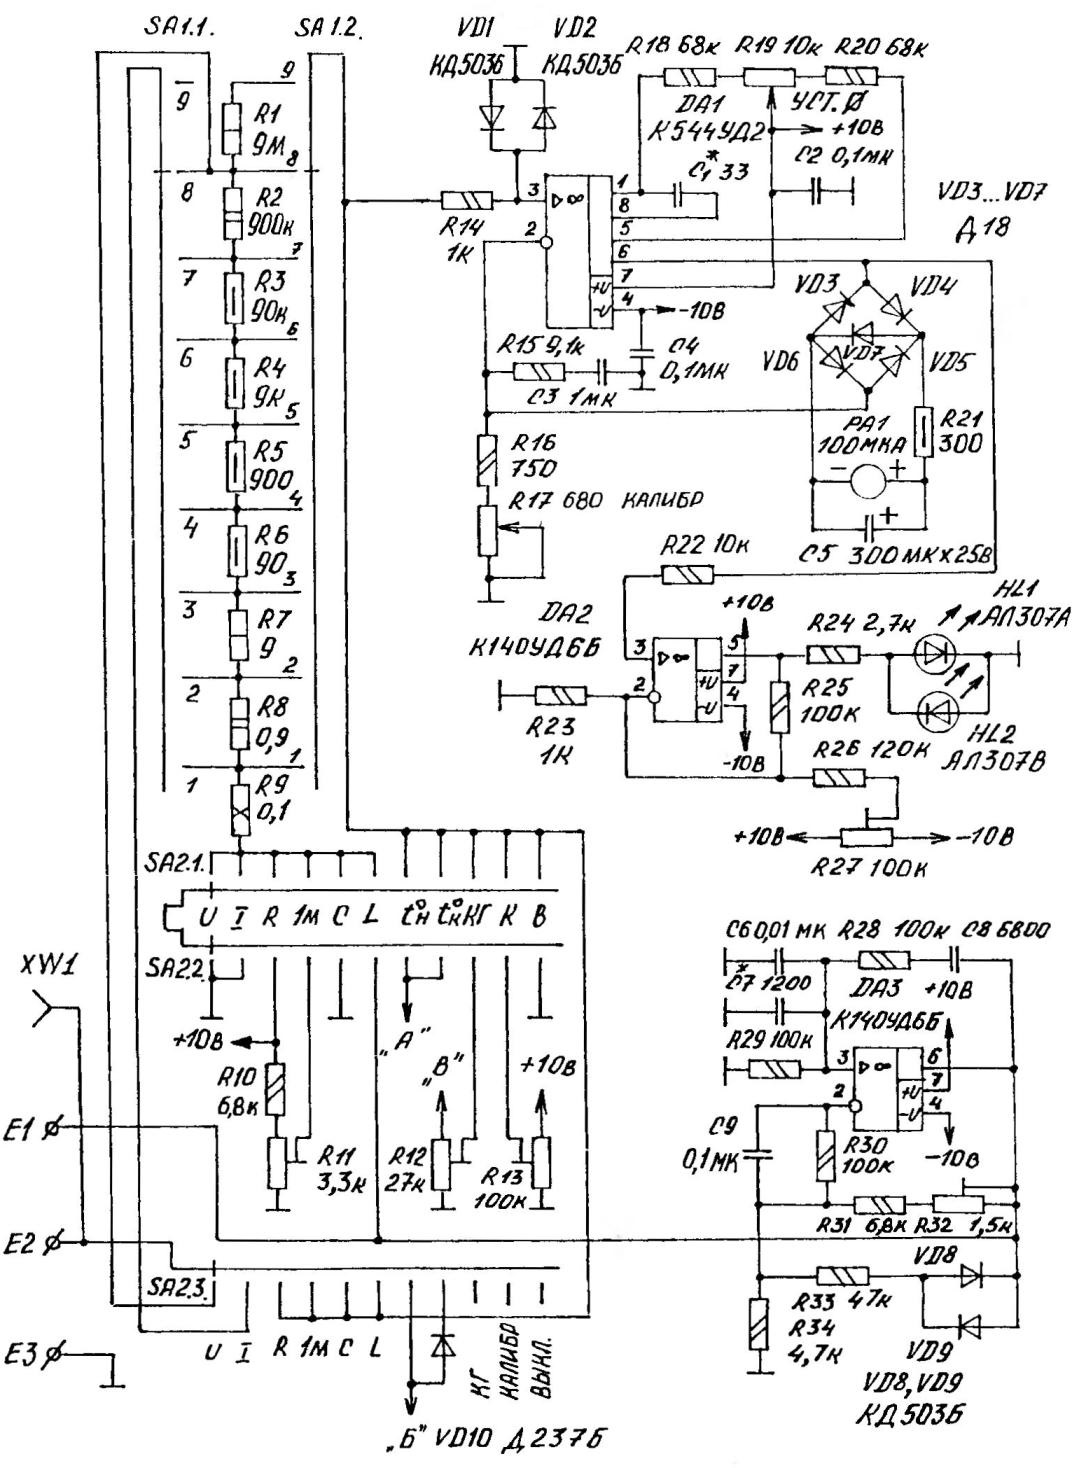 Fig.1. A circuit diagram of the basic part of the device